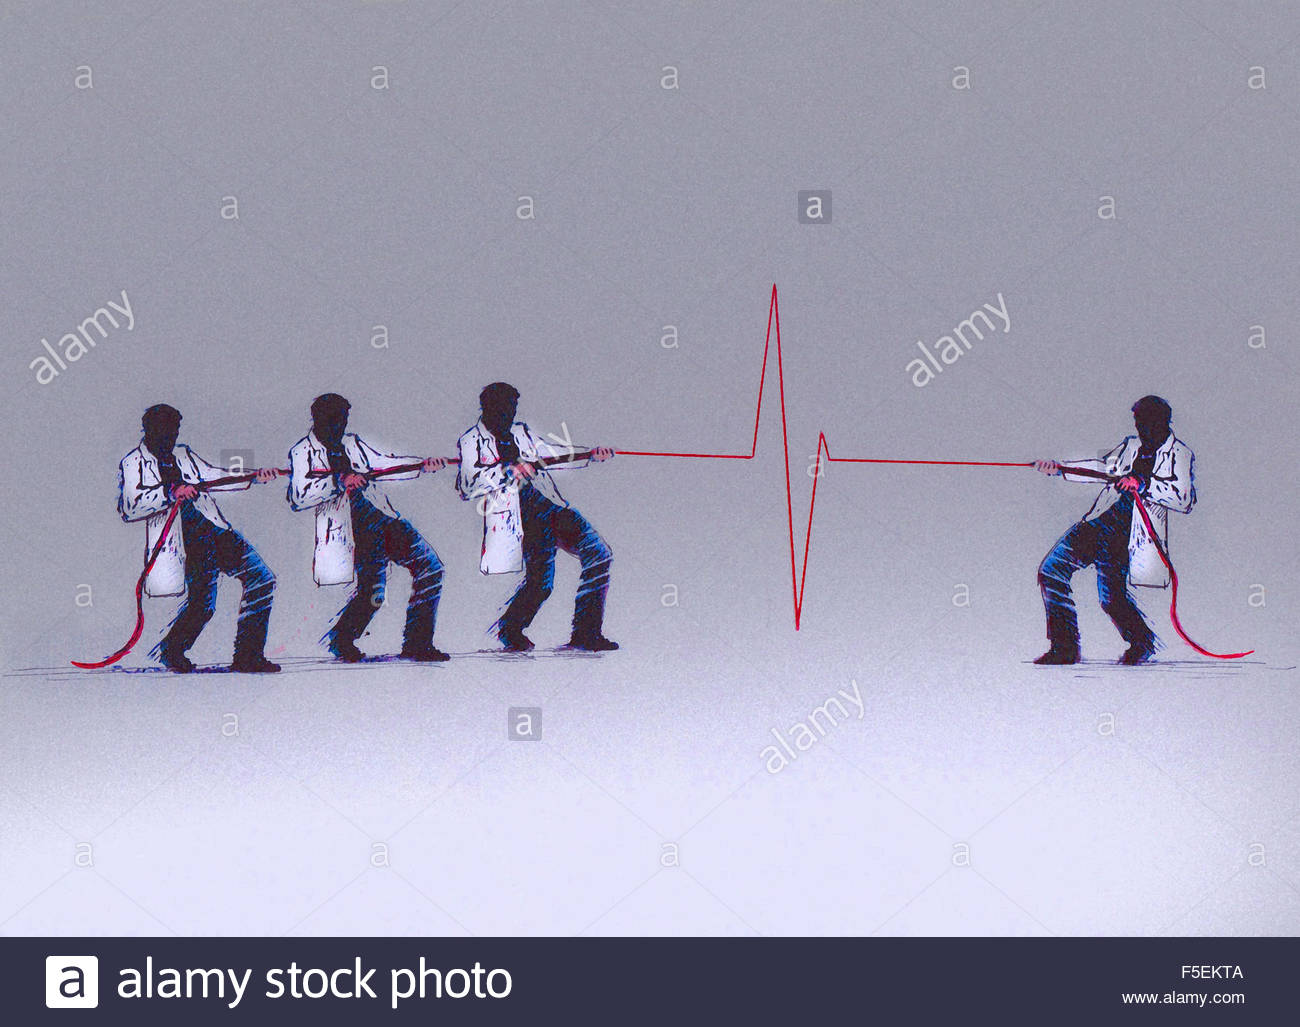 Doctors in unequal tug of war with pulse trace rope - Stock Image